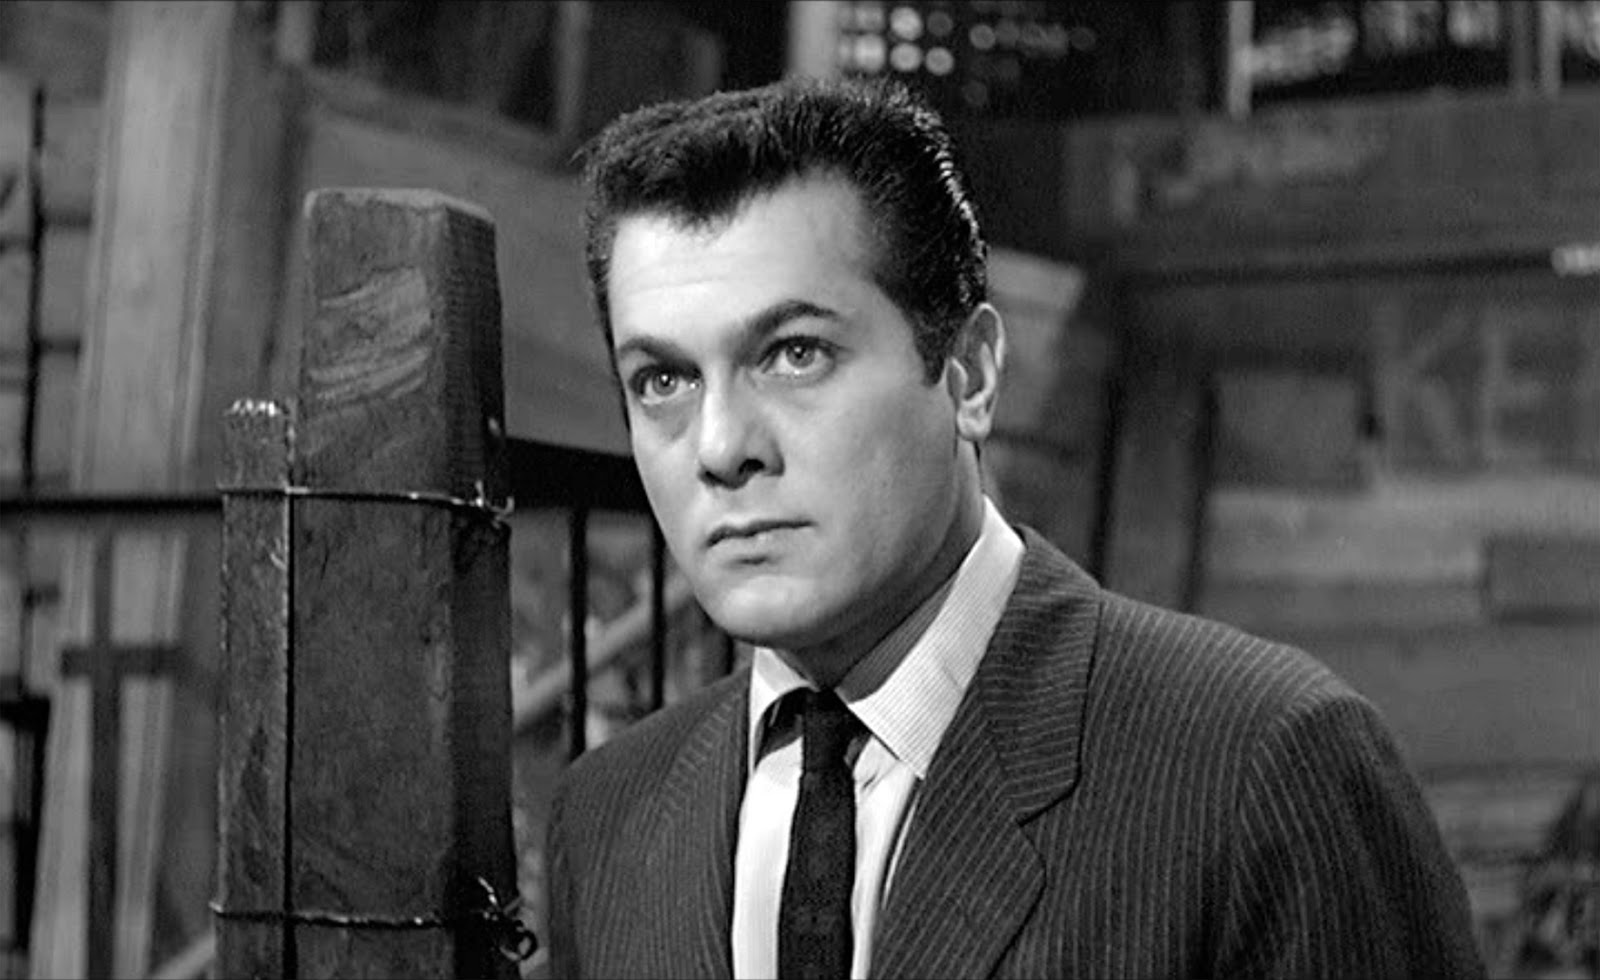 Tony Curtis as the ever-hustling Sidney Falco